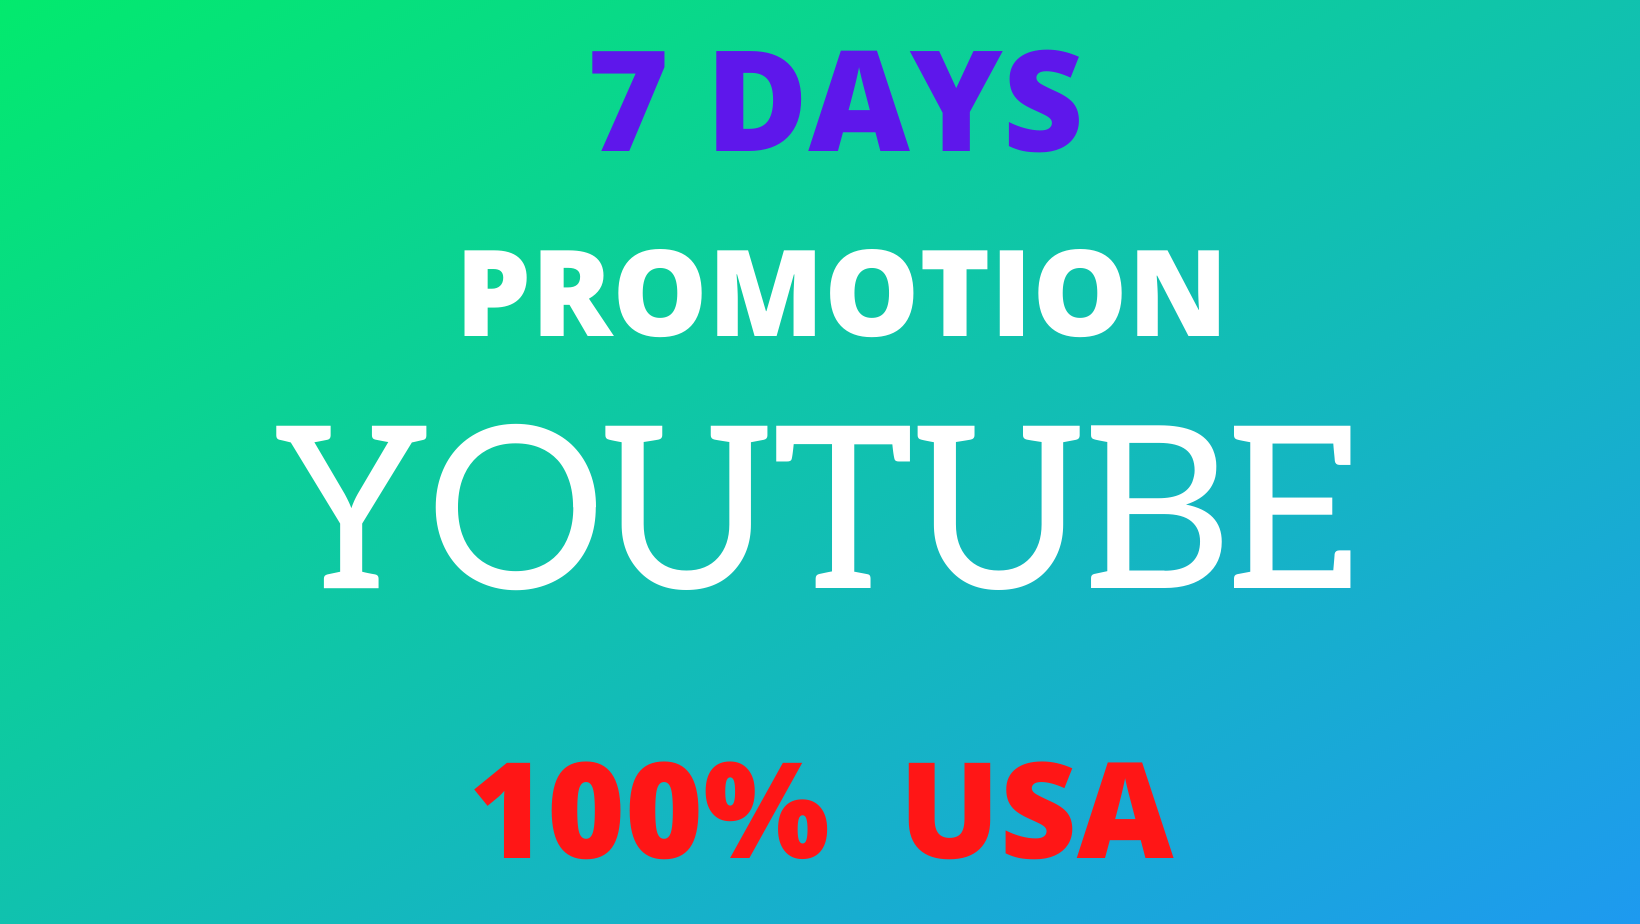 High Quality YouTube Video Seo Viral Marketing Target USA